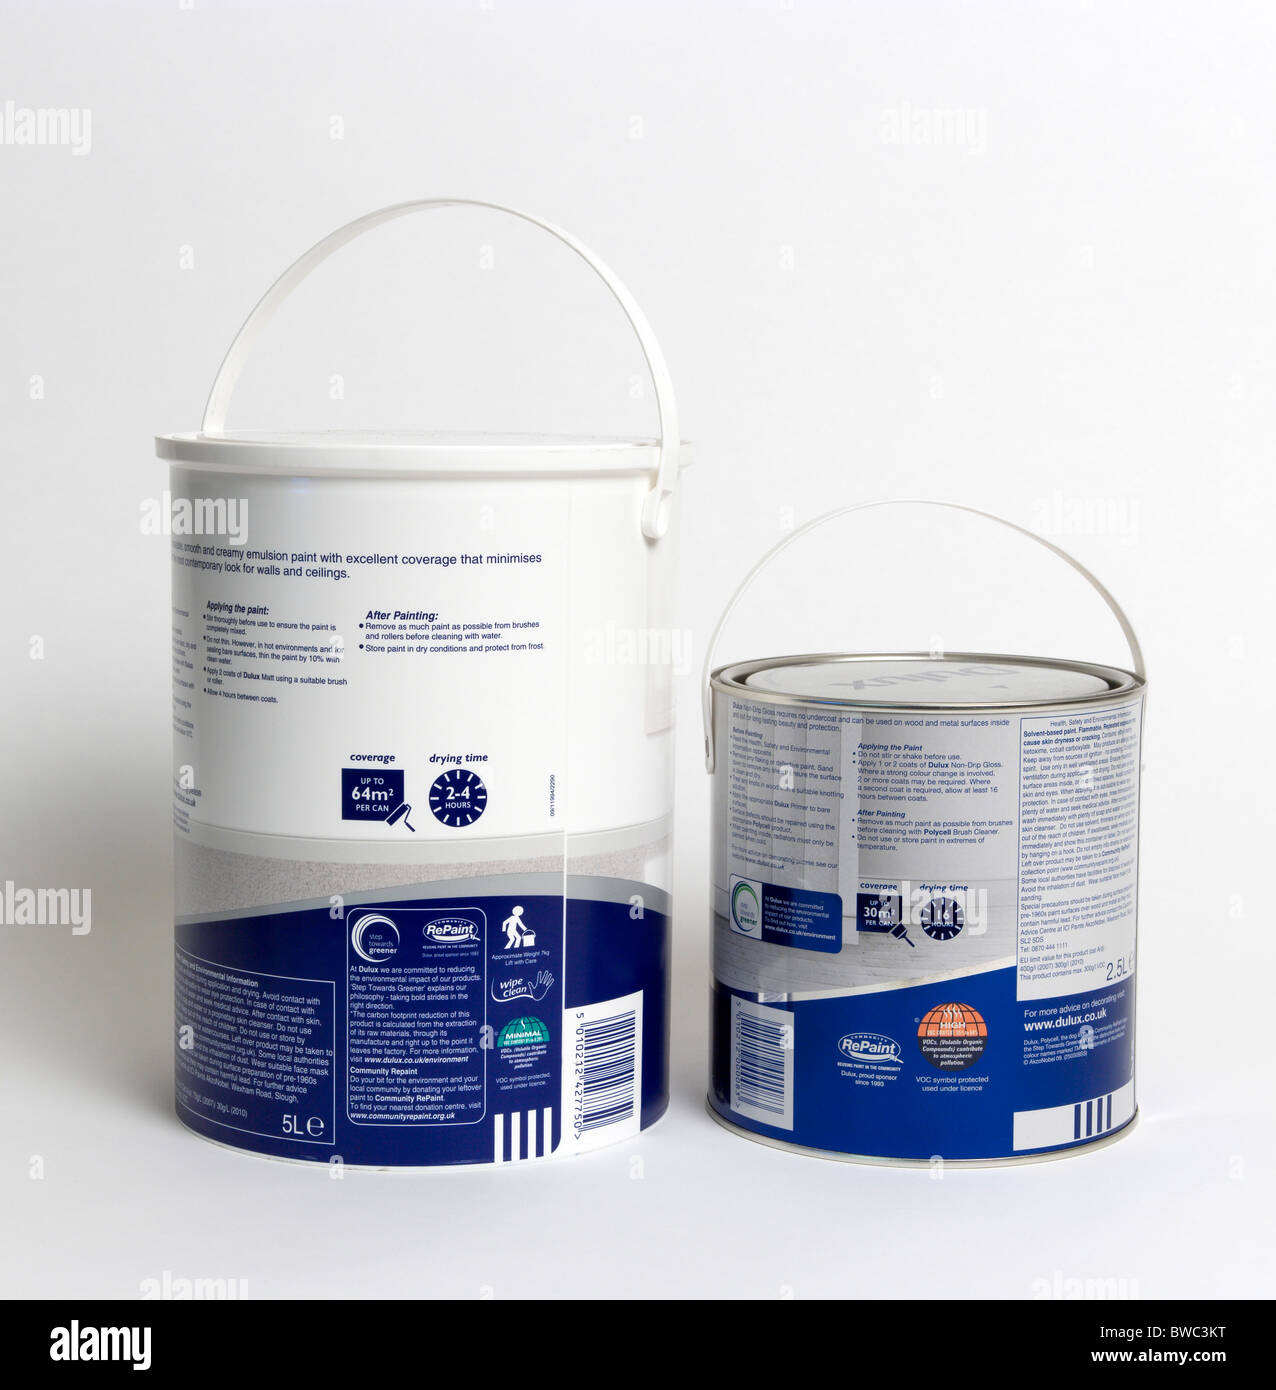 Architecture, Construction, Decorating, Pots of gloss and emulsion paint showing coverage and drying times. - Stock Image